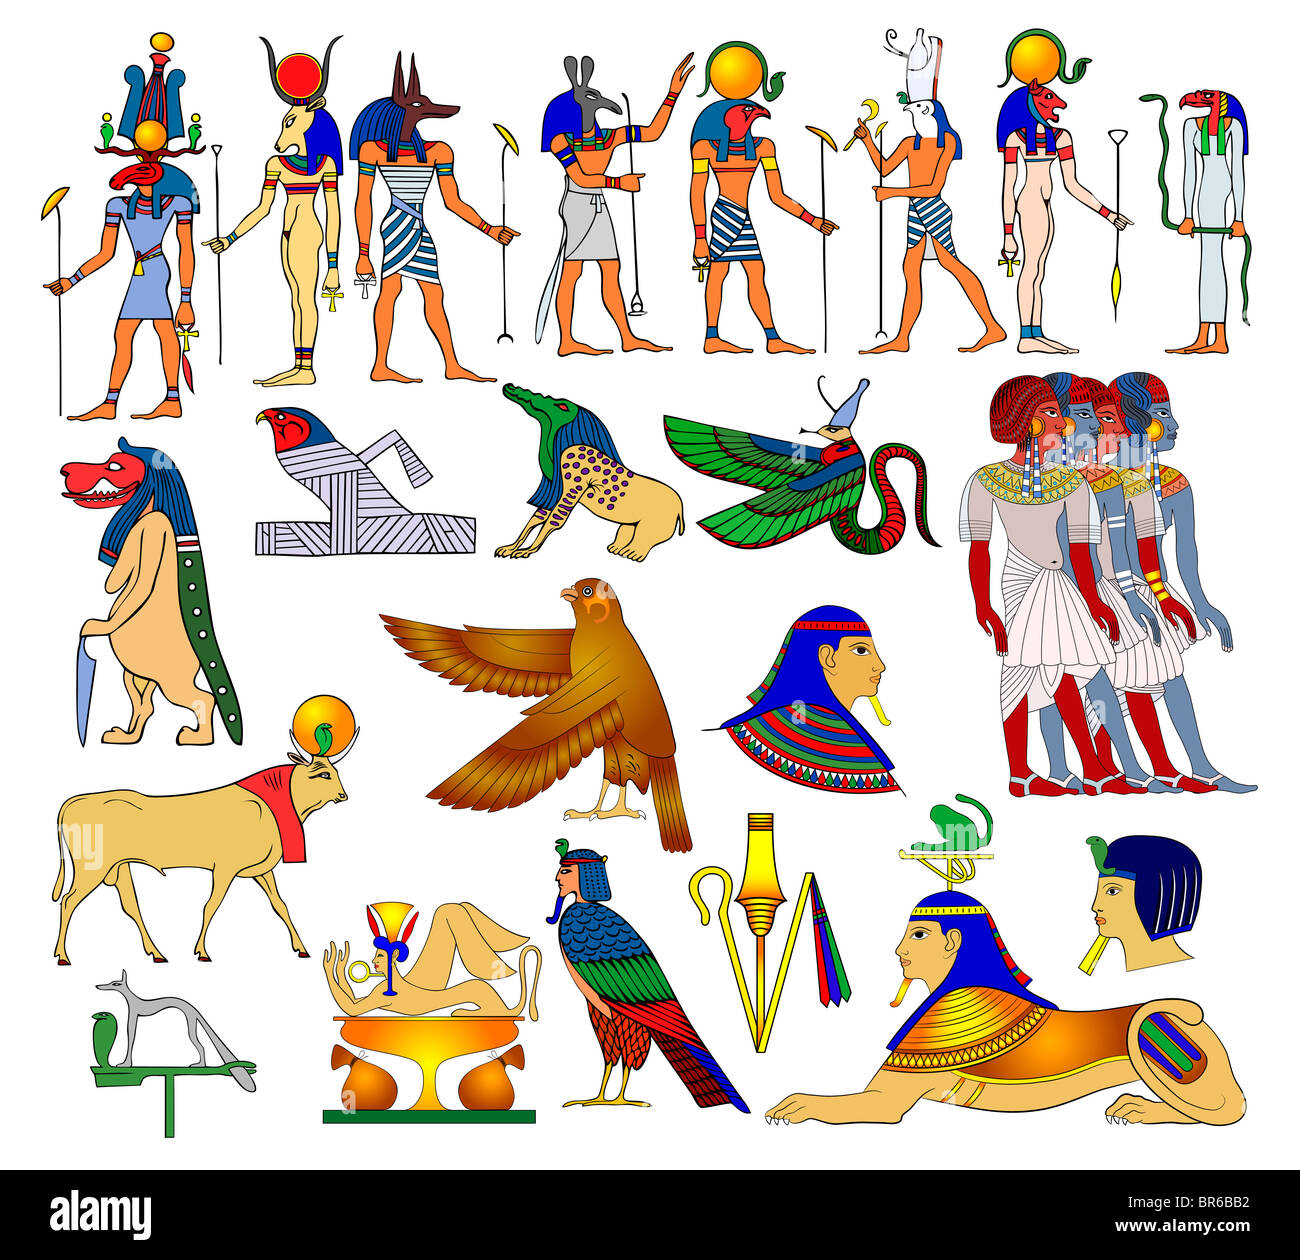 Vector illustration - Egyptian themes, gods, goddess, monster and creatures - Stock Image